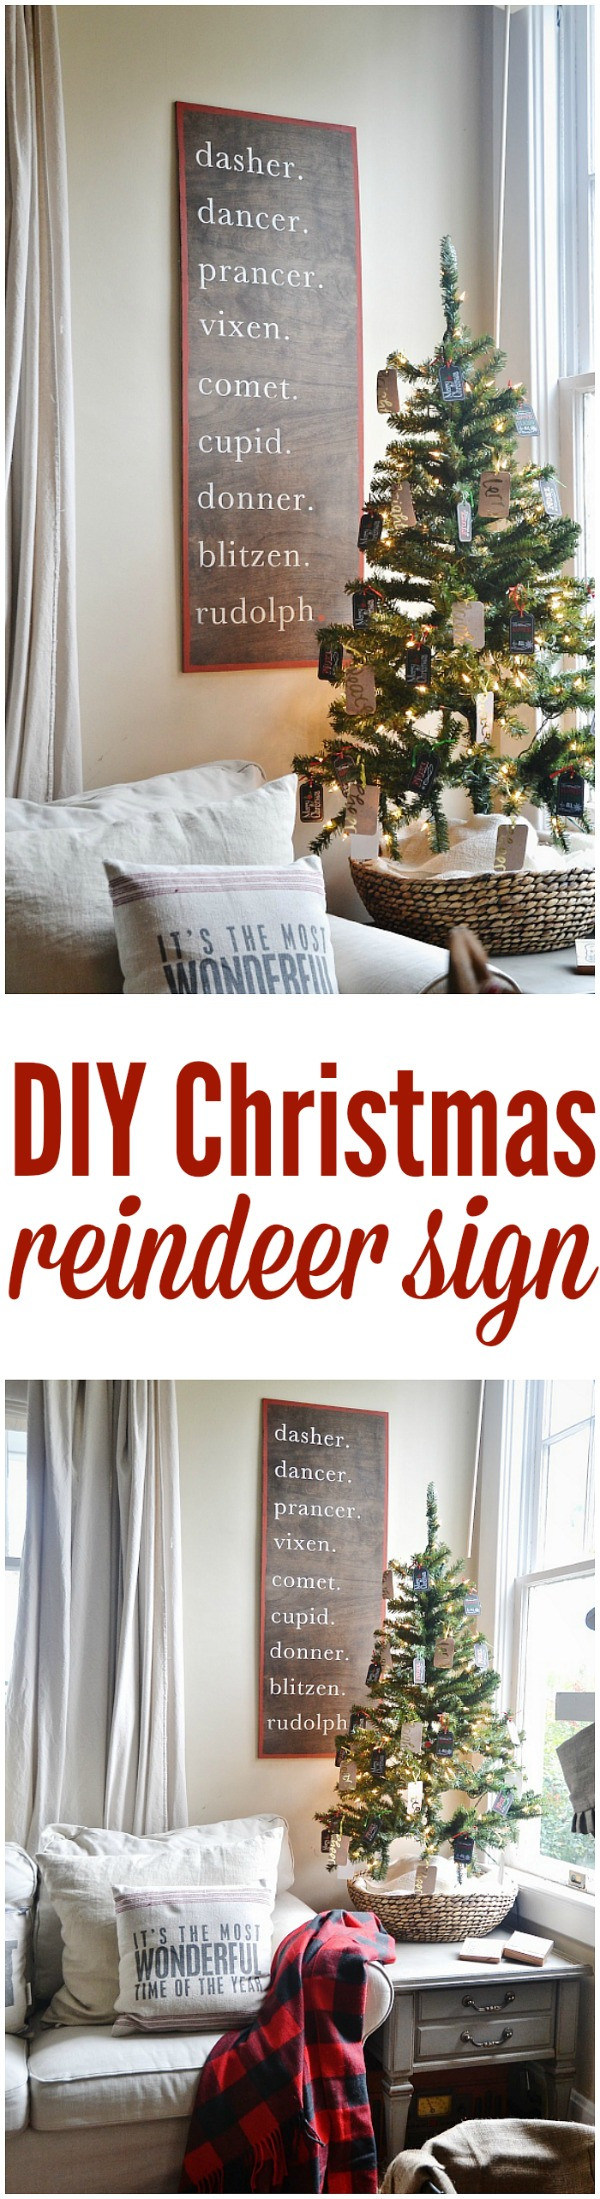 DIY Christmas Reindeer Sign.